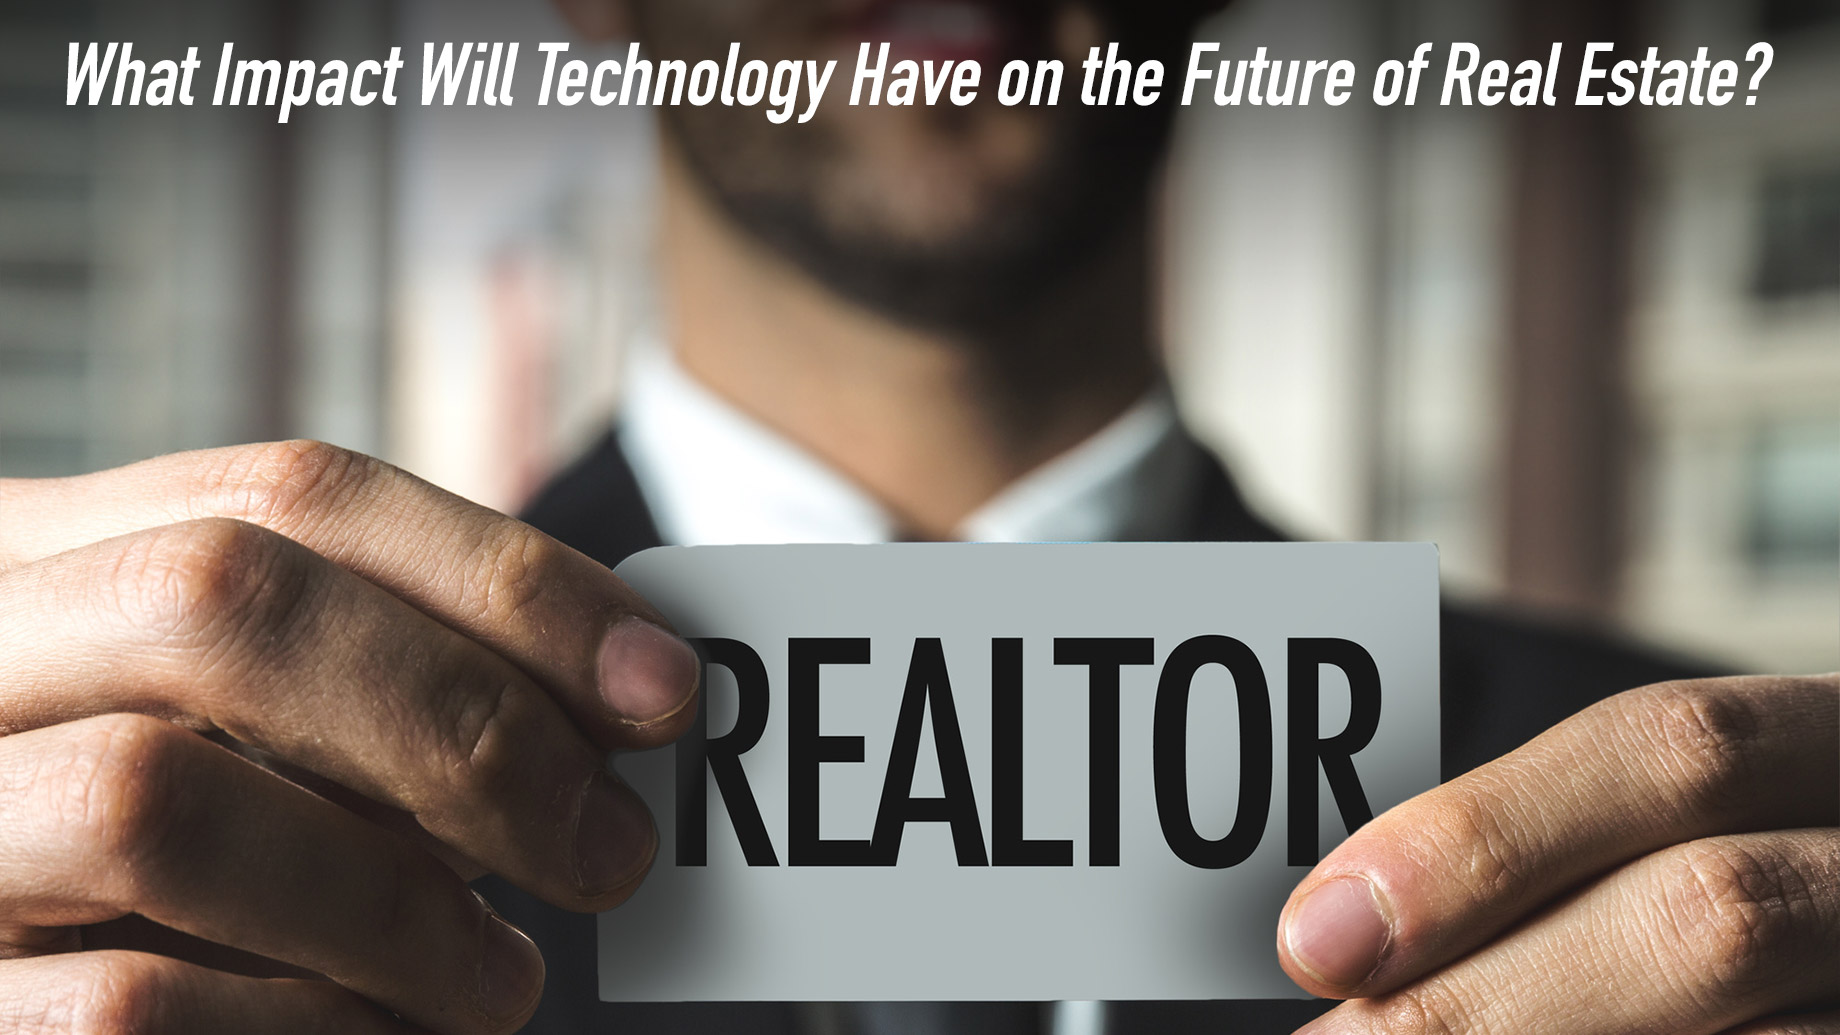 What Impact Will Technology Have on the Future of Real Estate?